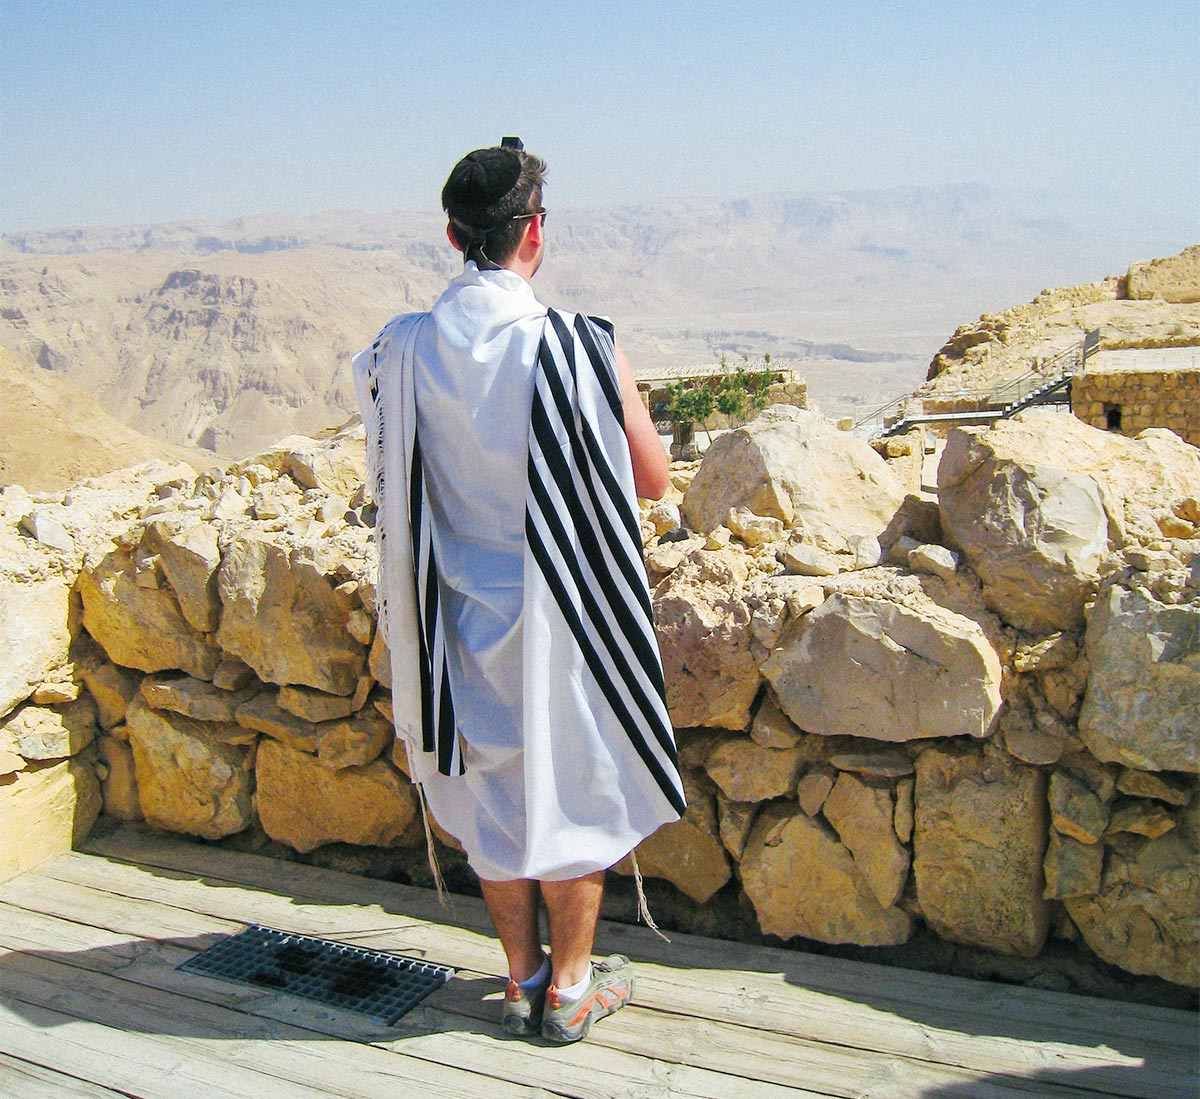 David Bitton, 2006 Birthright Israel Alumnus, praying on top of Masada